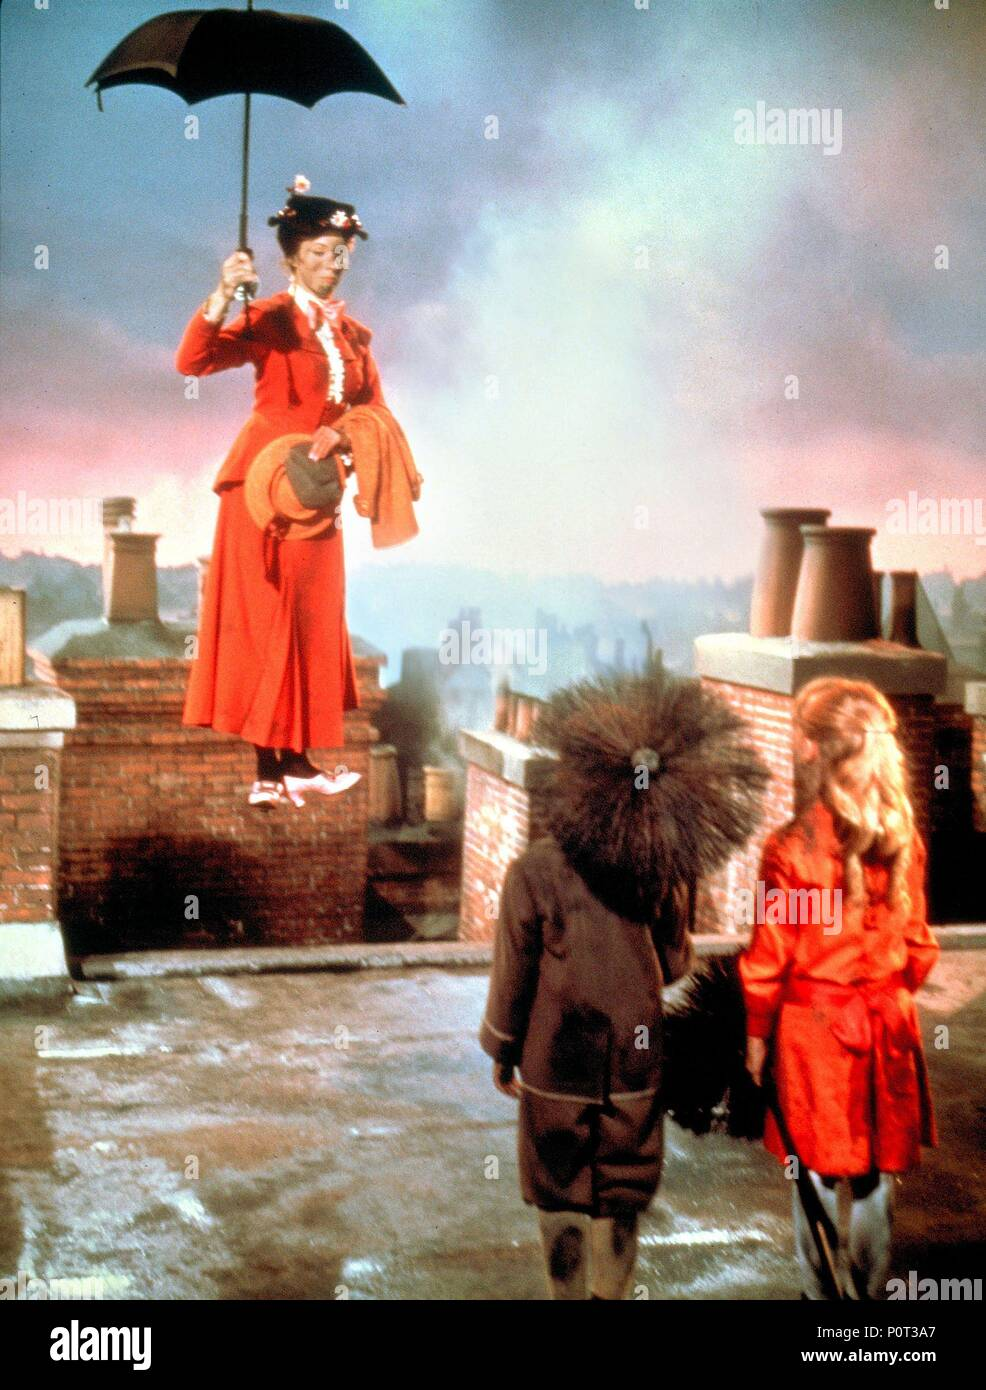 Mary Poppins Cheminée Mary Poppins Chimney Photos Mary Poppins Chimney Images Alamy